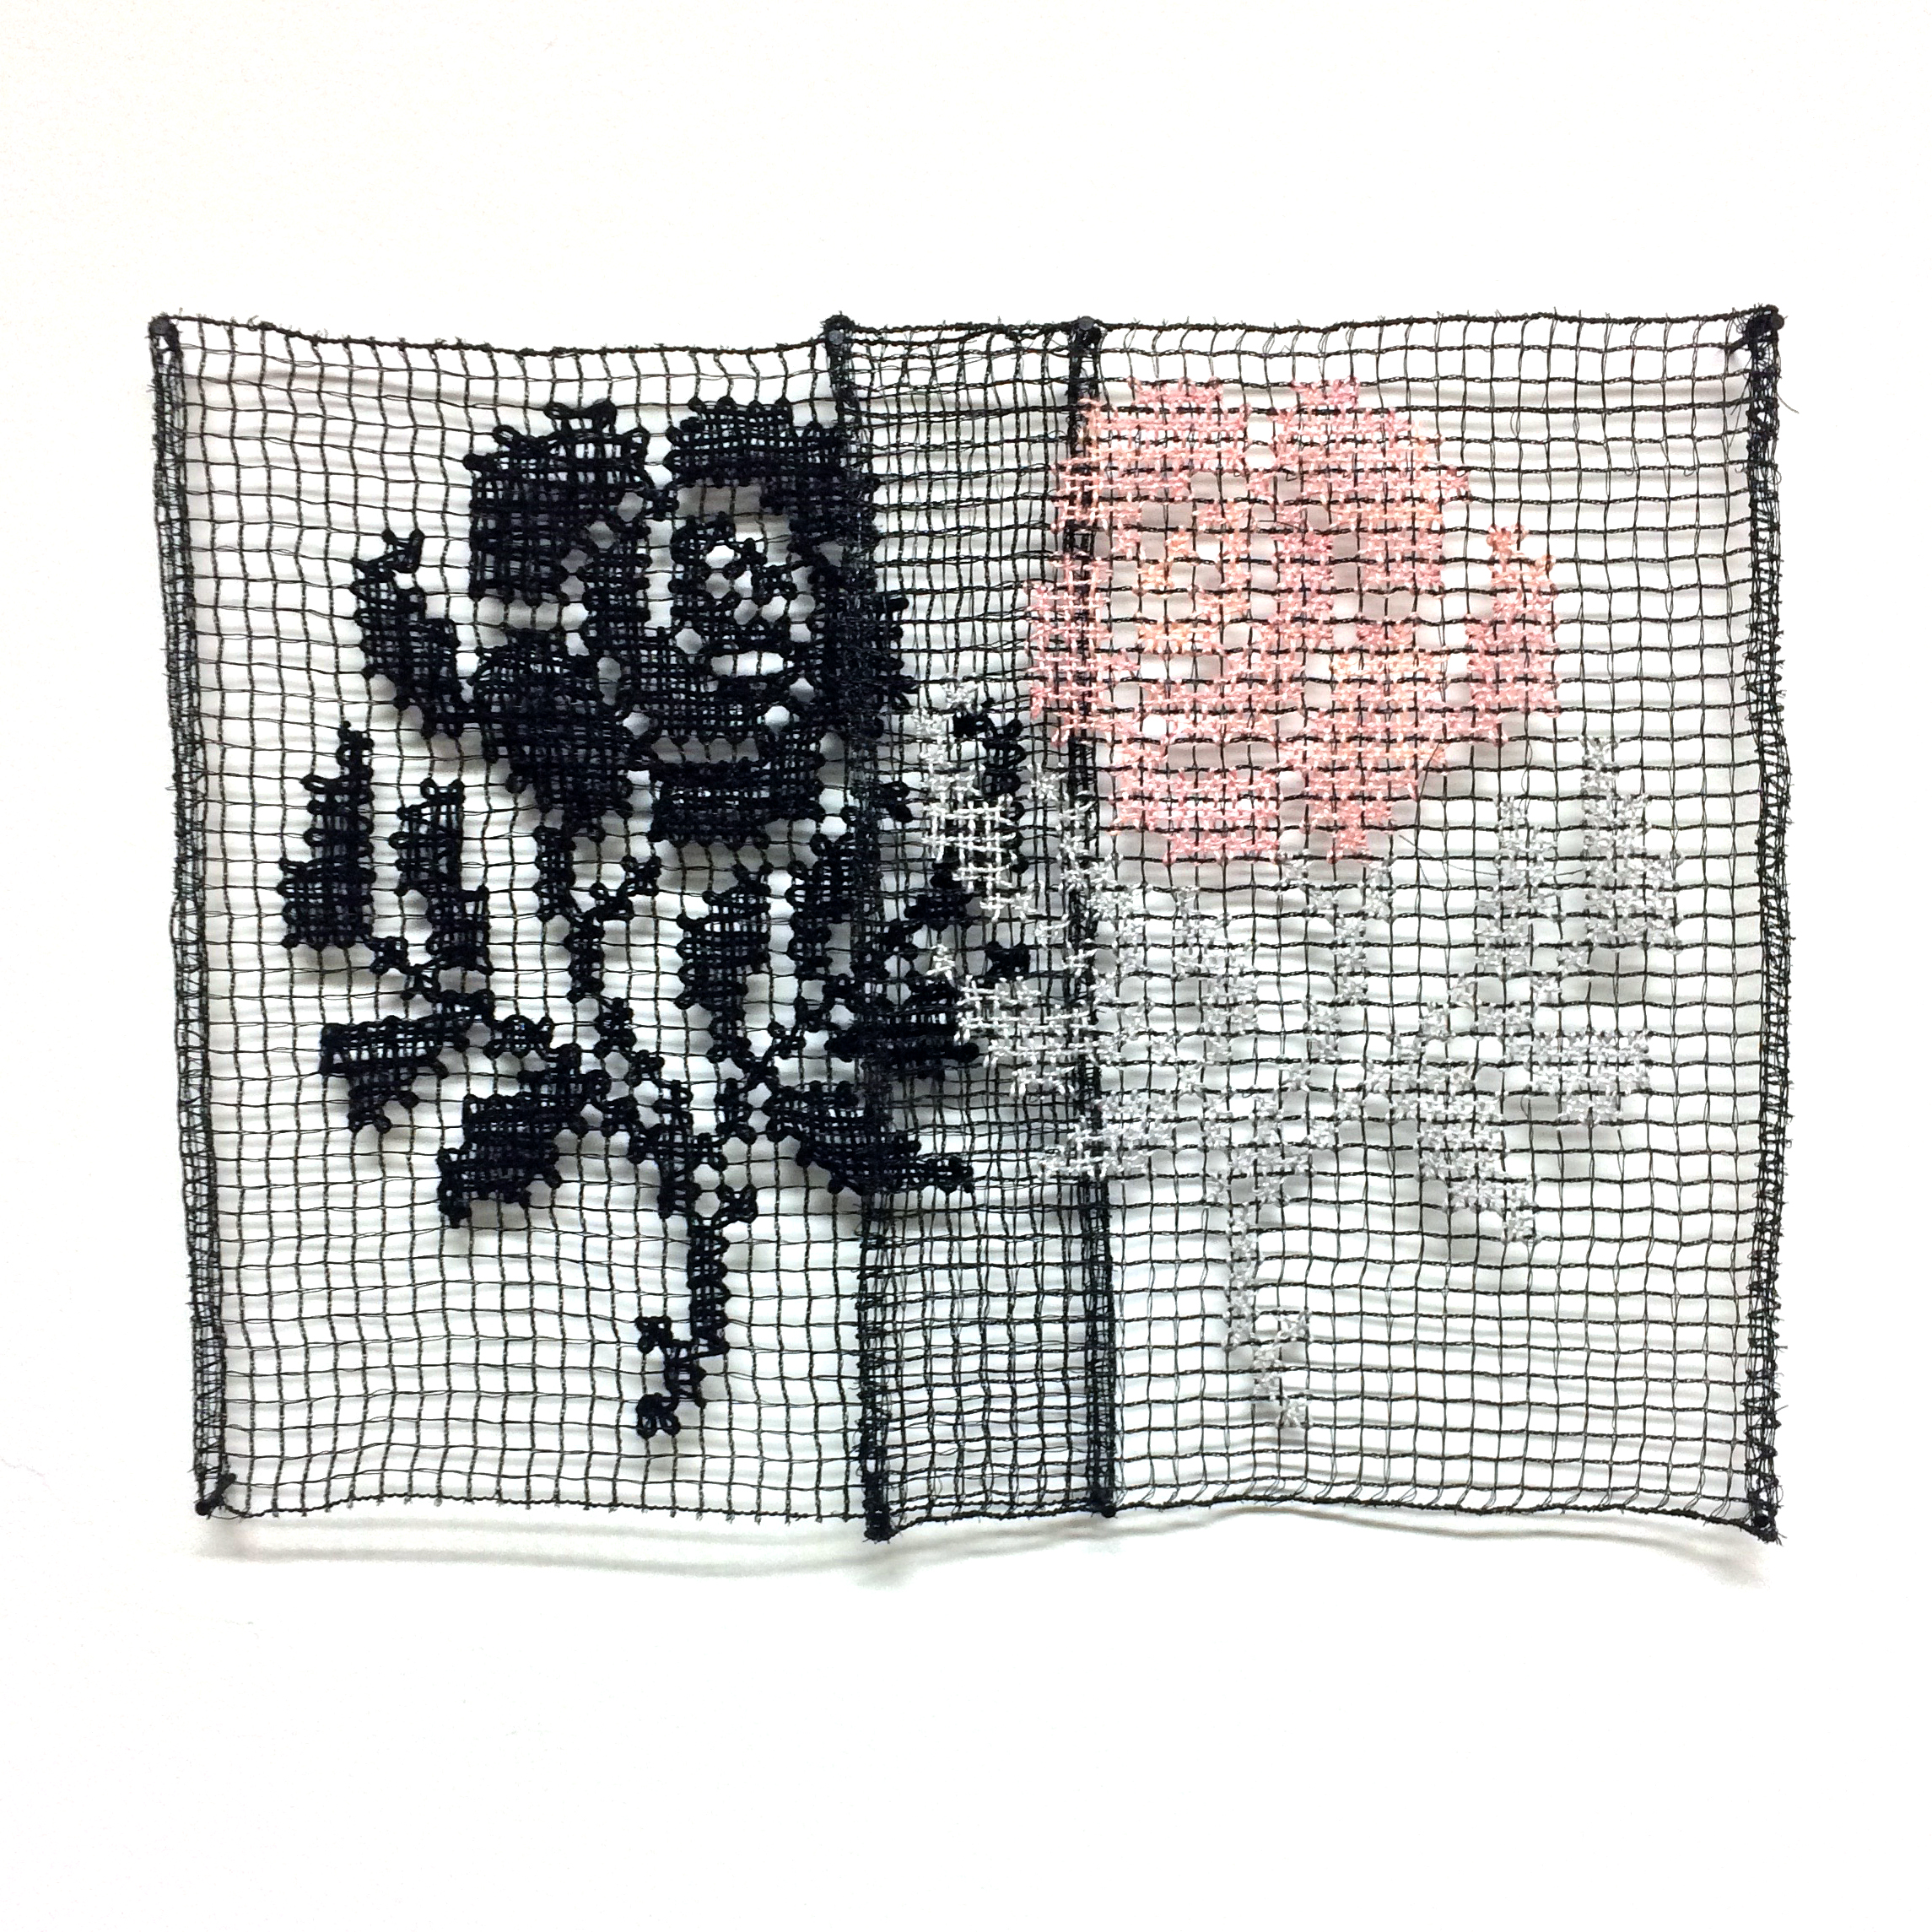 Lace rose in black and white and pink and grey